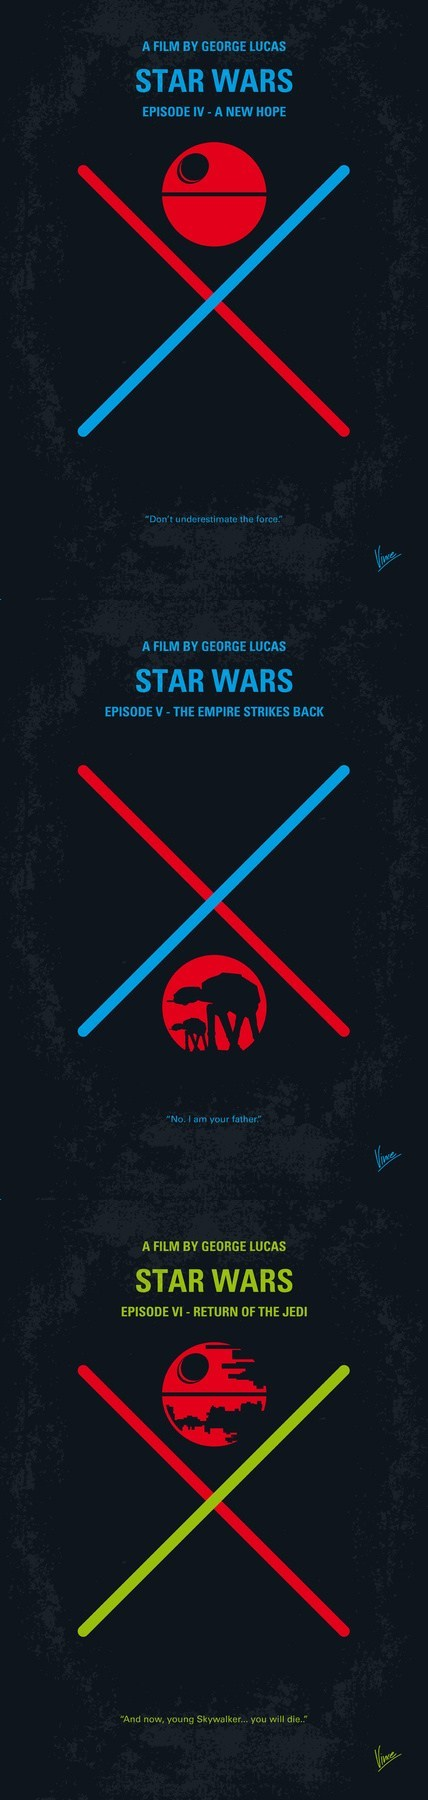 A New Hope Empire Strikes Back minimalism posters return of the jedi star wars trilogy - 6629172224